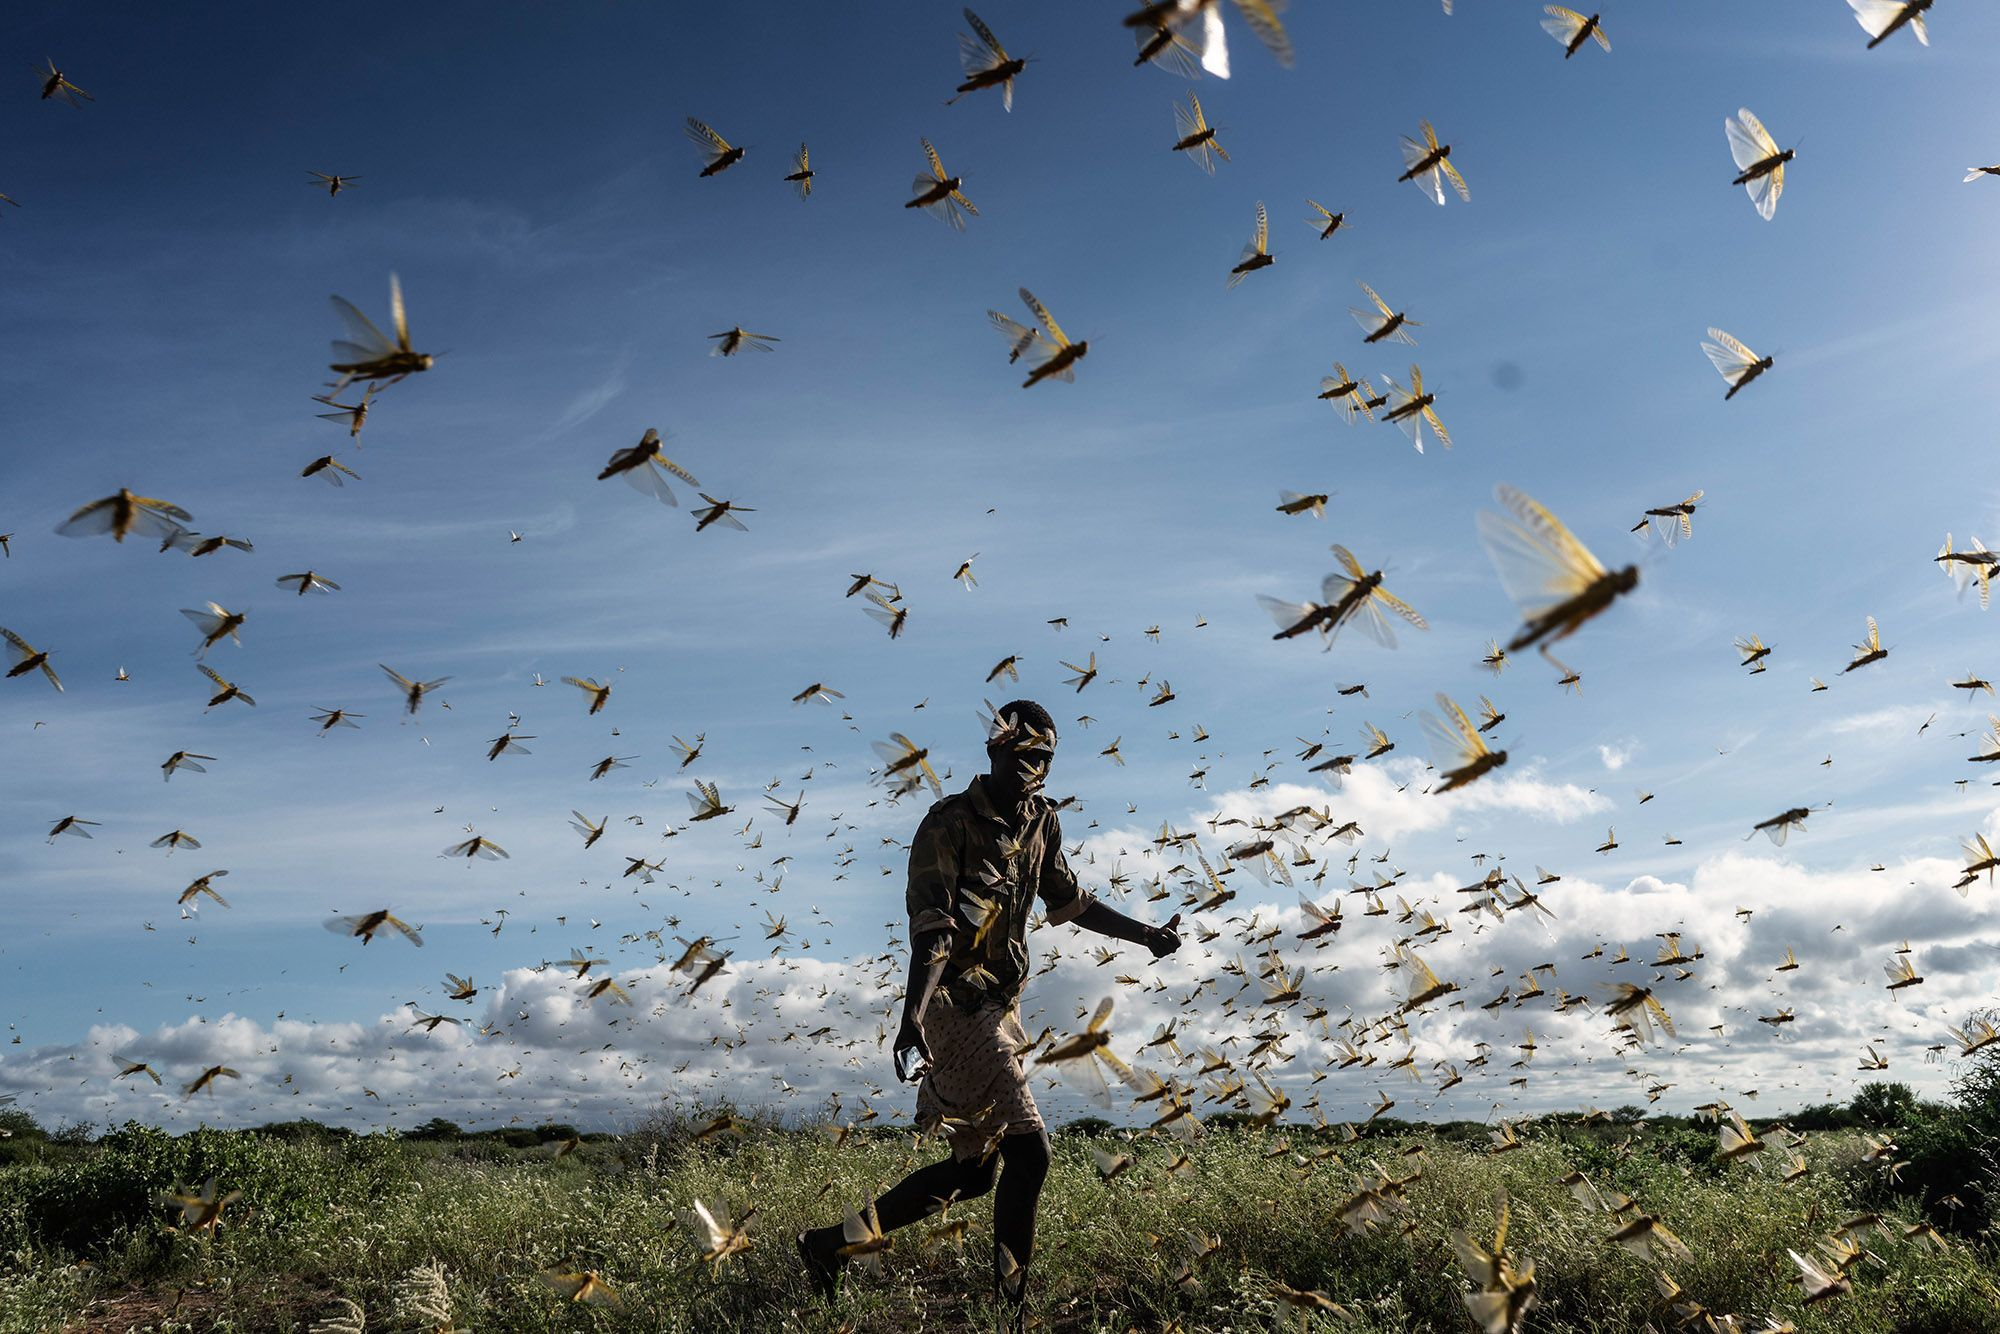 SAMBURU COUNTY, KENYA - MAY 21: A man is chasing away a swarm of desert locusts early in the morning, on May 21, 2020 in Samburu County, Kenya. Trillions of locusts are swarming across parts of Kenya, Somalia and Ethiopia, following an earlier infestation in February. Pastoralist communities like the Samburu in northern Kenya fear the locusts will devastate the rangeland on which their livestock are dependent. (Photo by Fredrik Lerneryd/Getty Images)